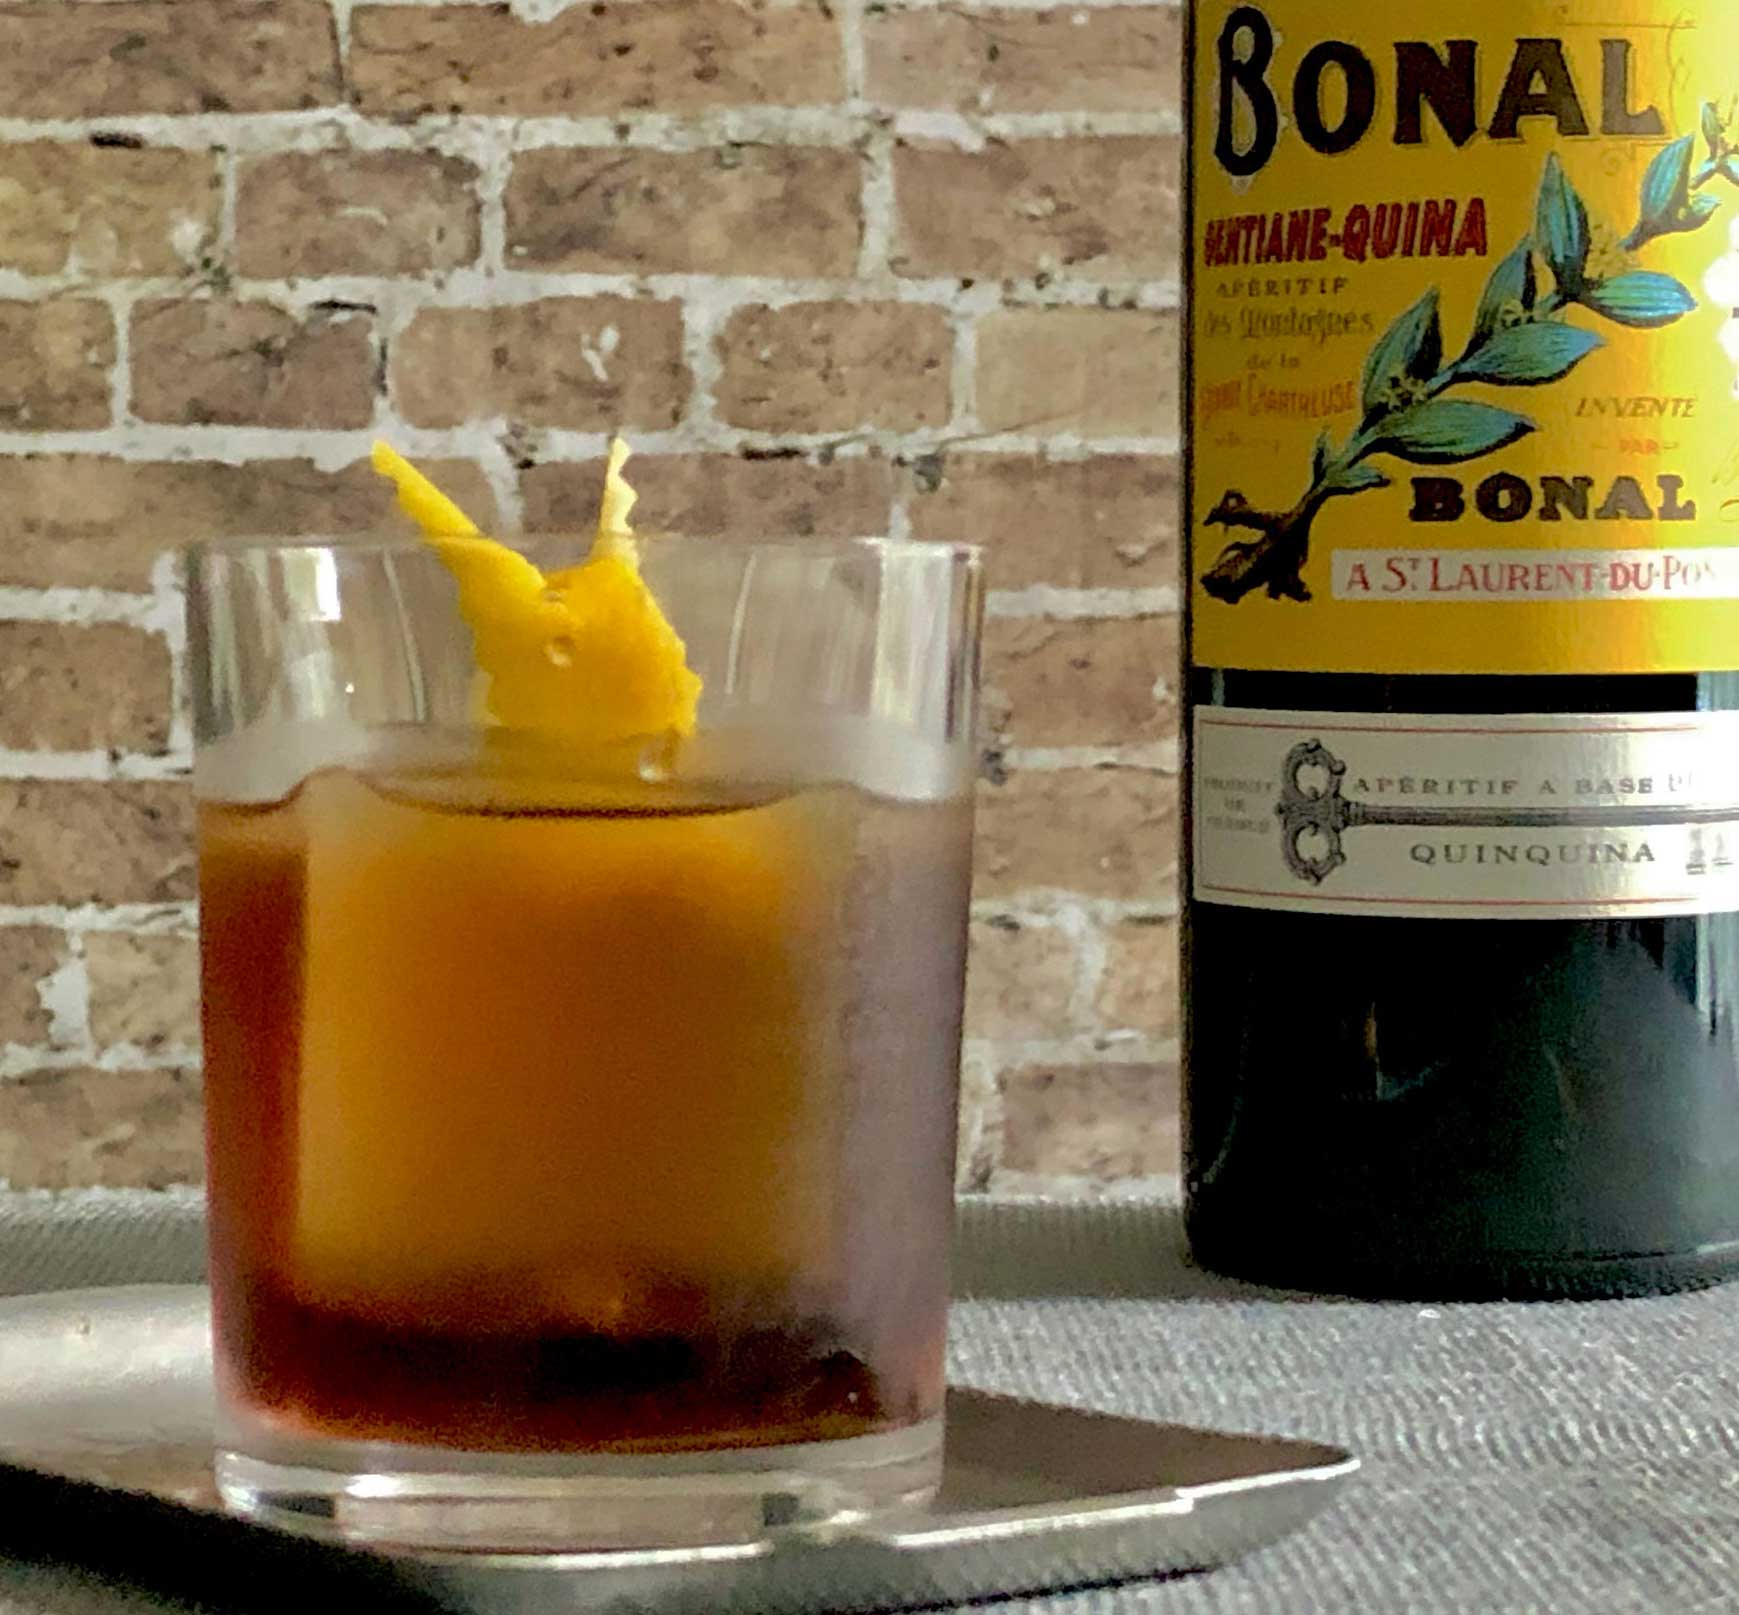 An example of the Tif & Tivo, the mixed drink (cocktail), by Rhiannon Enlil, New Orleans, featuring Bonal Gentiane-Quina, and Cocchi Americano Bianco; photo by Lee Edwards